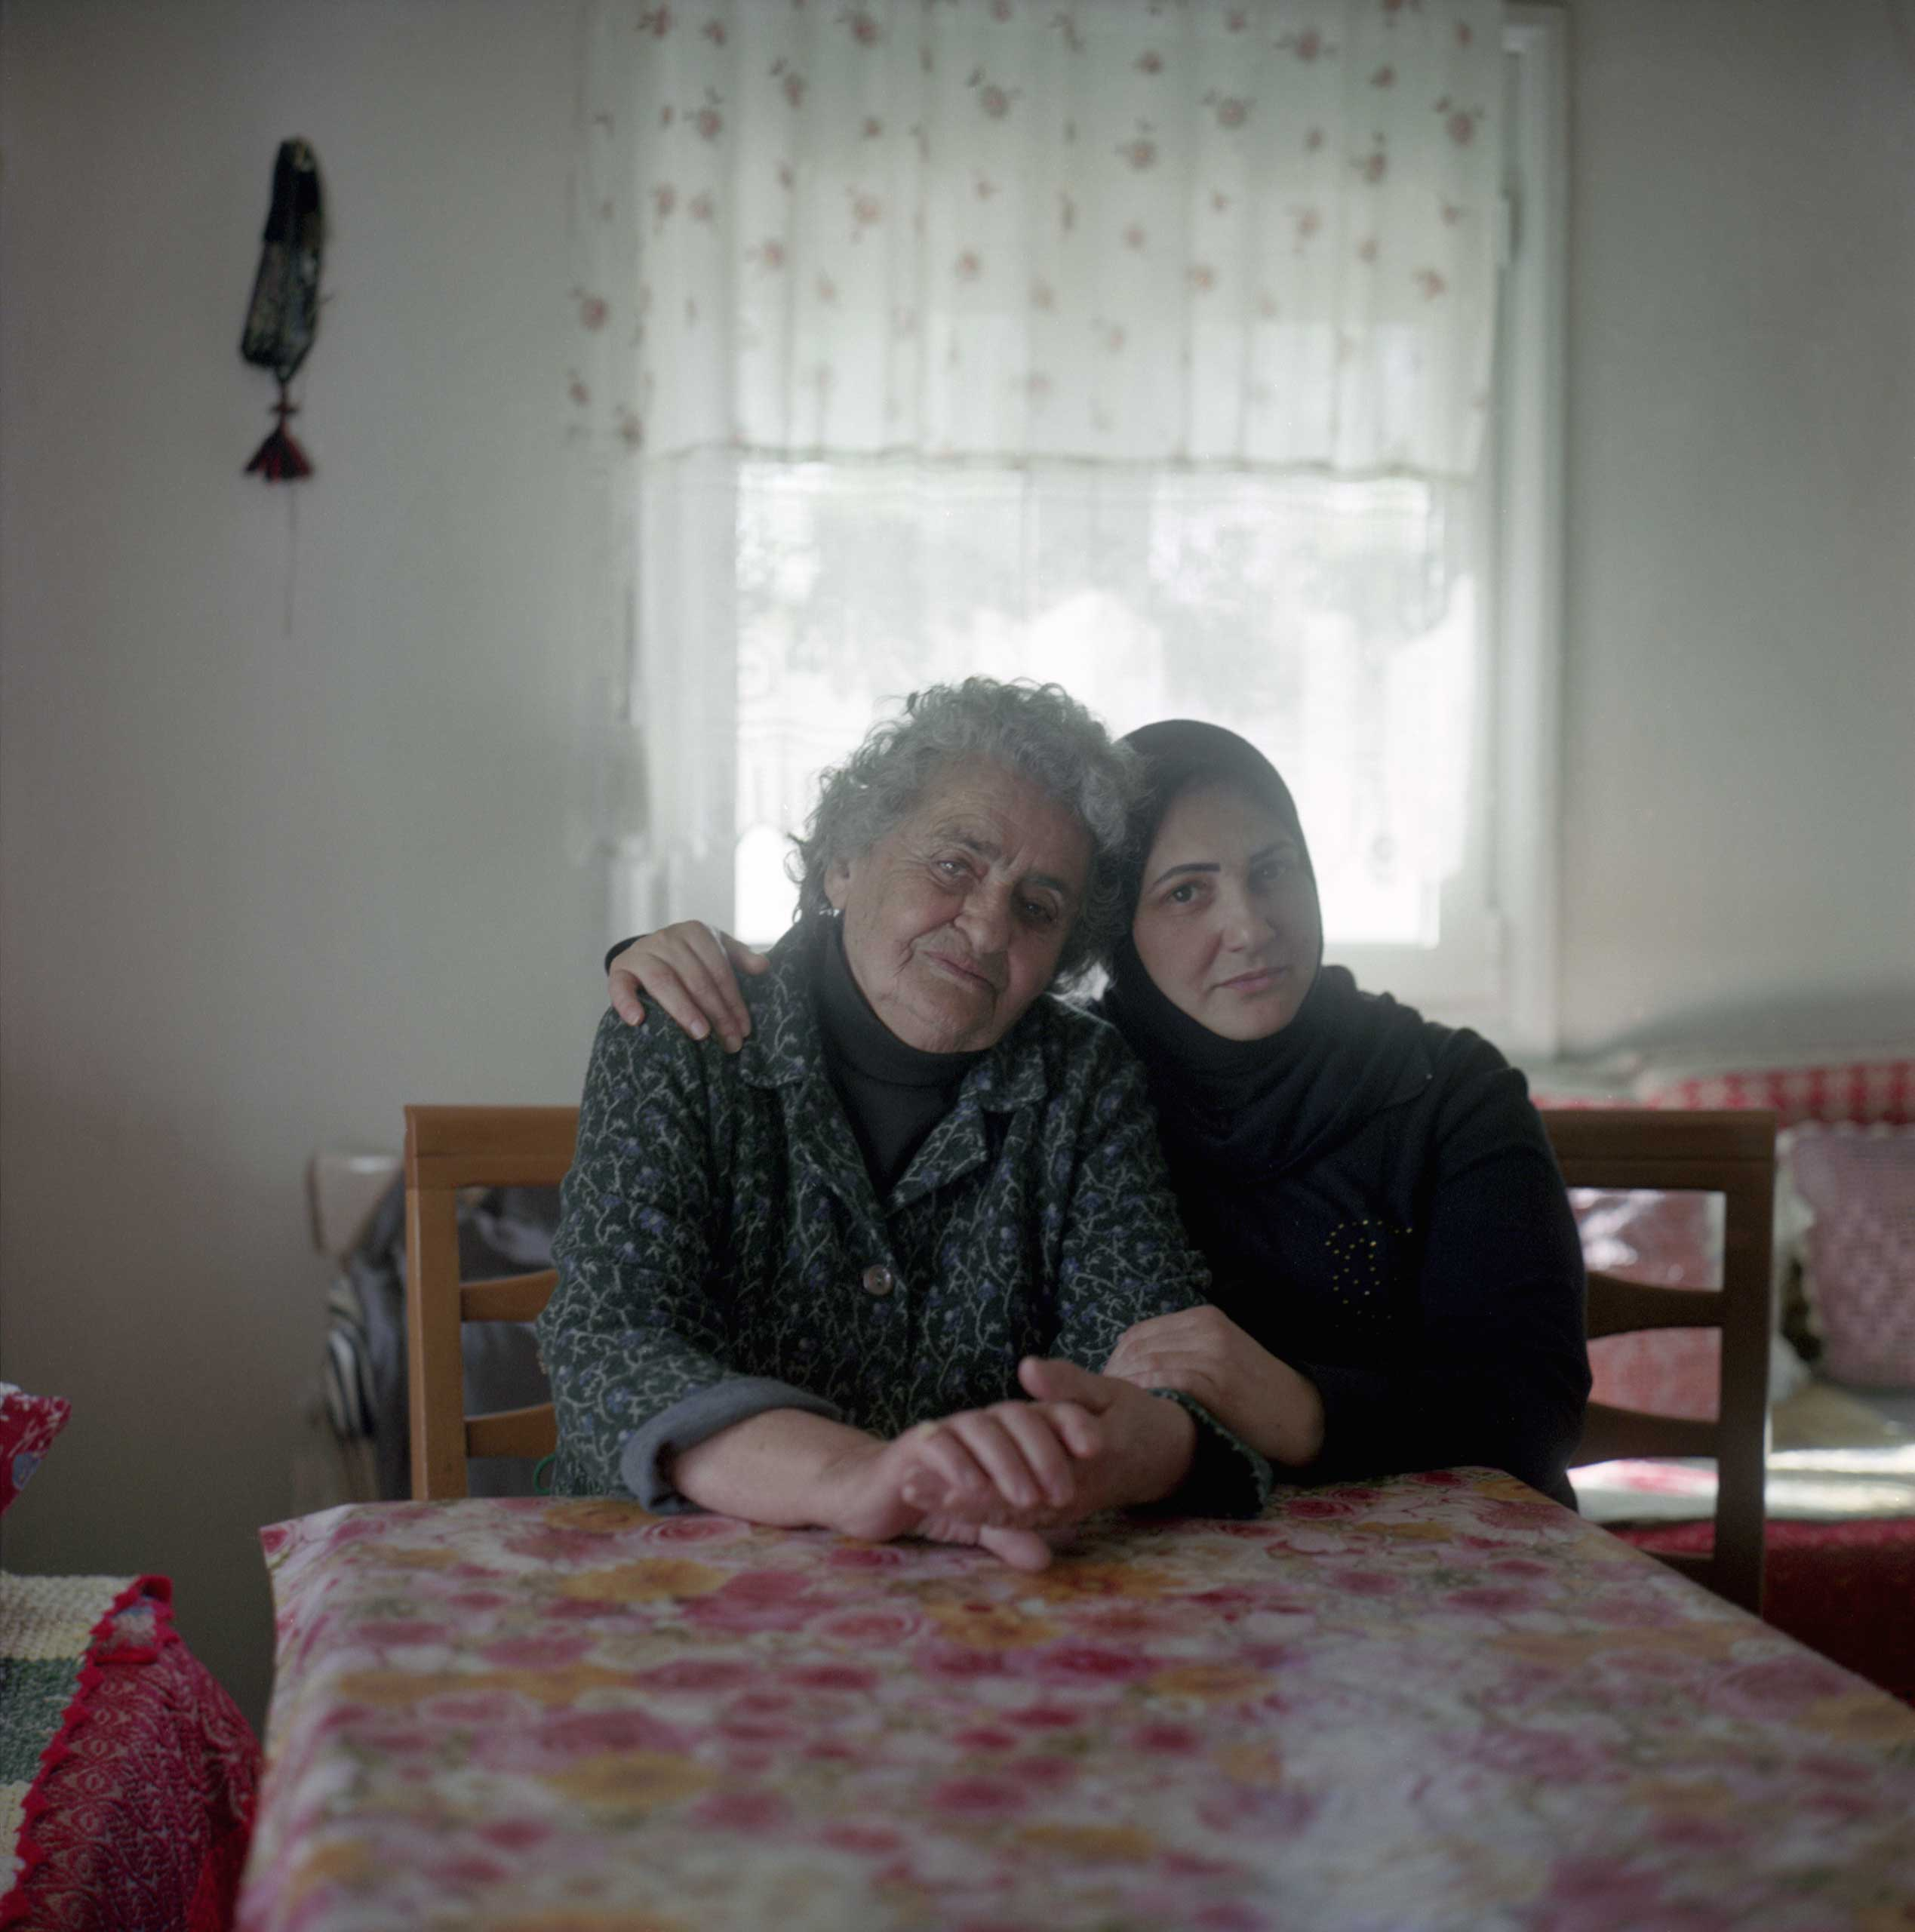 <b>Panagiota Vasiliadou, 82, villager, and Saha, a 30-year-old refugee from Syria</b> Panagiota Vasiliadou hosts eight Syrian refugees in her home.  Panagiota is paying for food, while the women help cook the meals. Her water and electricity bill more than doubled since she has welcomed them in her home. She says she cannot afford to support eight adults with her pension of 400 Euros a month, but she does not know how to tell them to leave. Idomeni, Greece. April 2016.